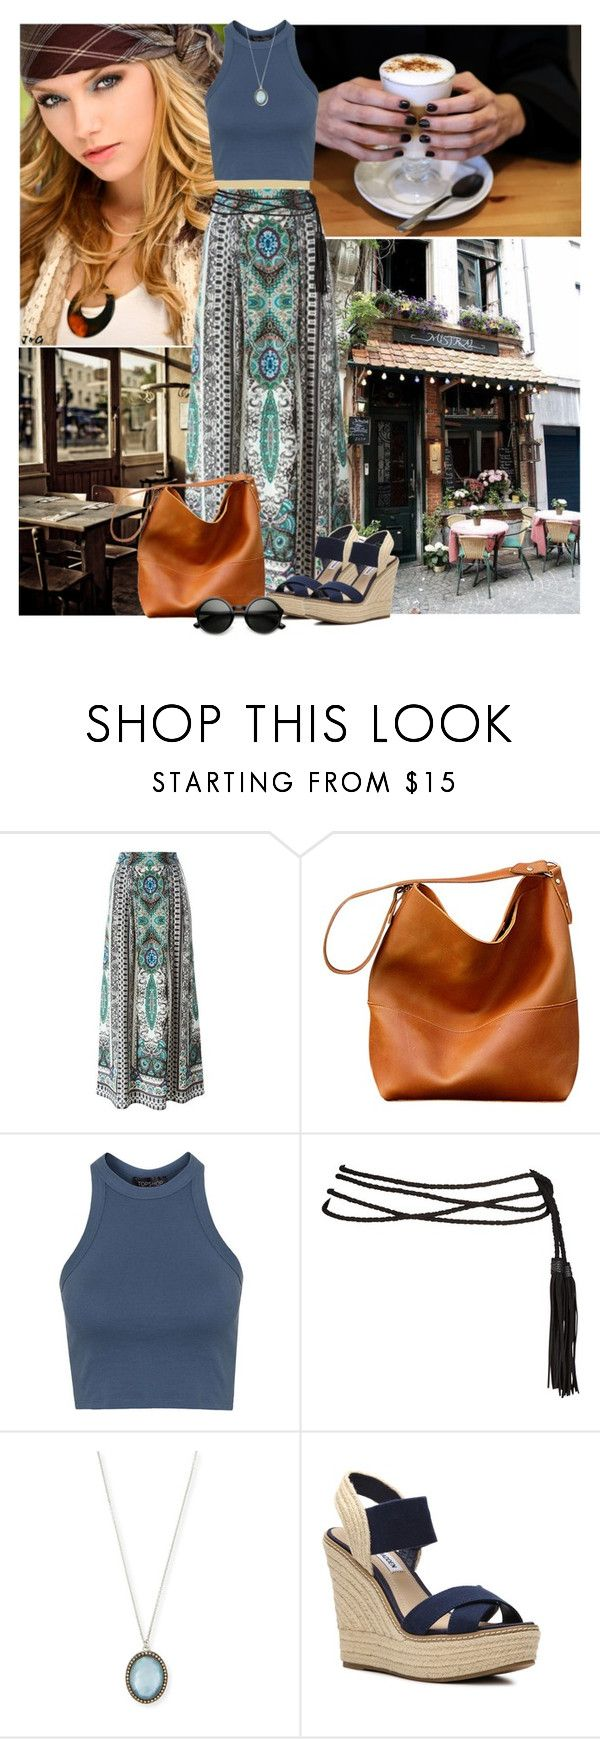 """Feeling Great"" by mayara1011 ❤ liked on Polyvore featuring Etro, Topshop, Armenta and Steve Madden"